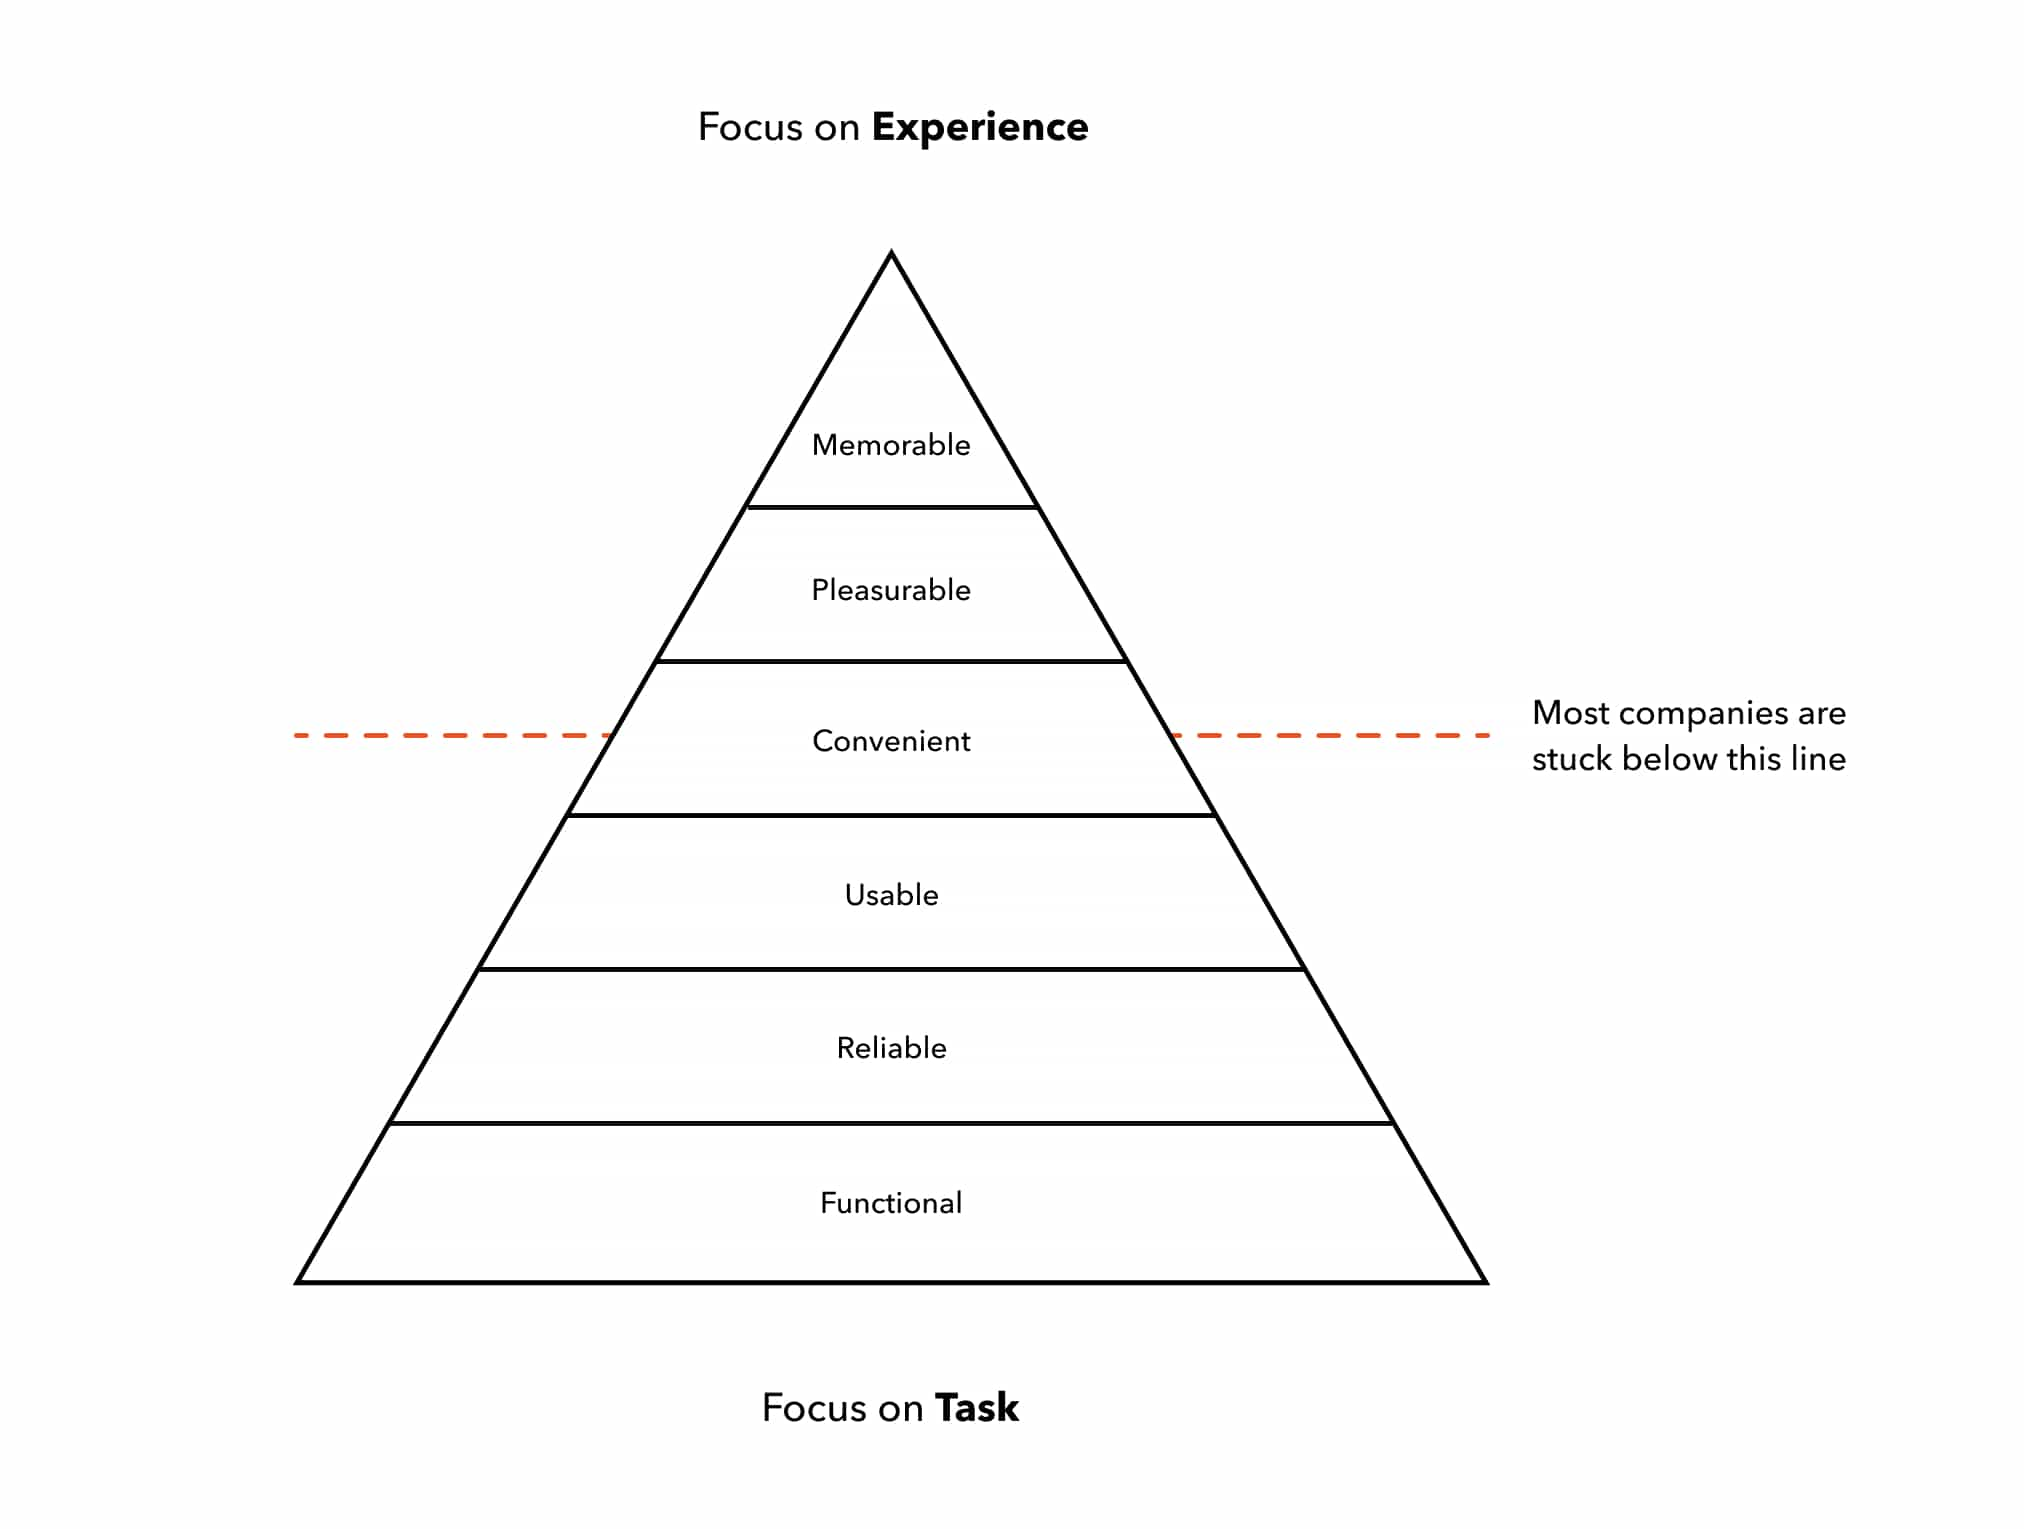 A diagram explaining CX using a pyramid of six levels: Functional, Reliable, Usable, Convenient, Pleasurable, and Memorable (from bottom up). A dotted line indicates that most companies are stuck below the Convenient level.